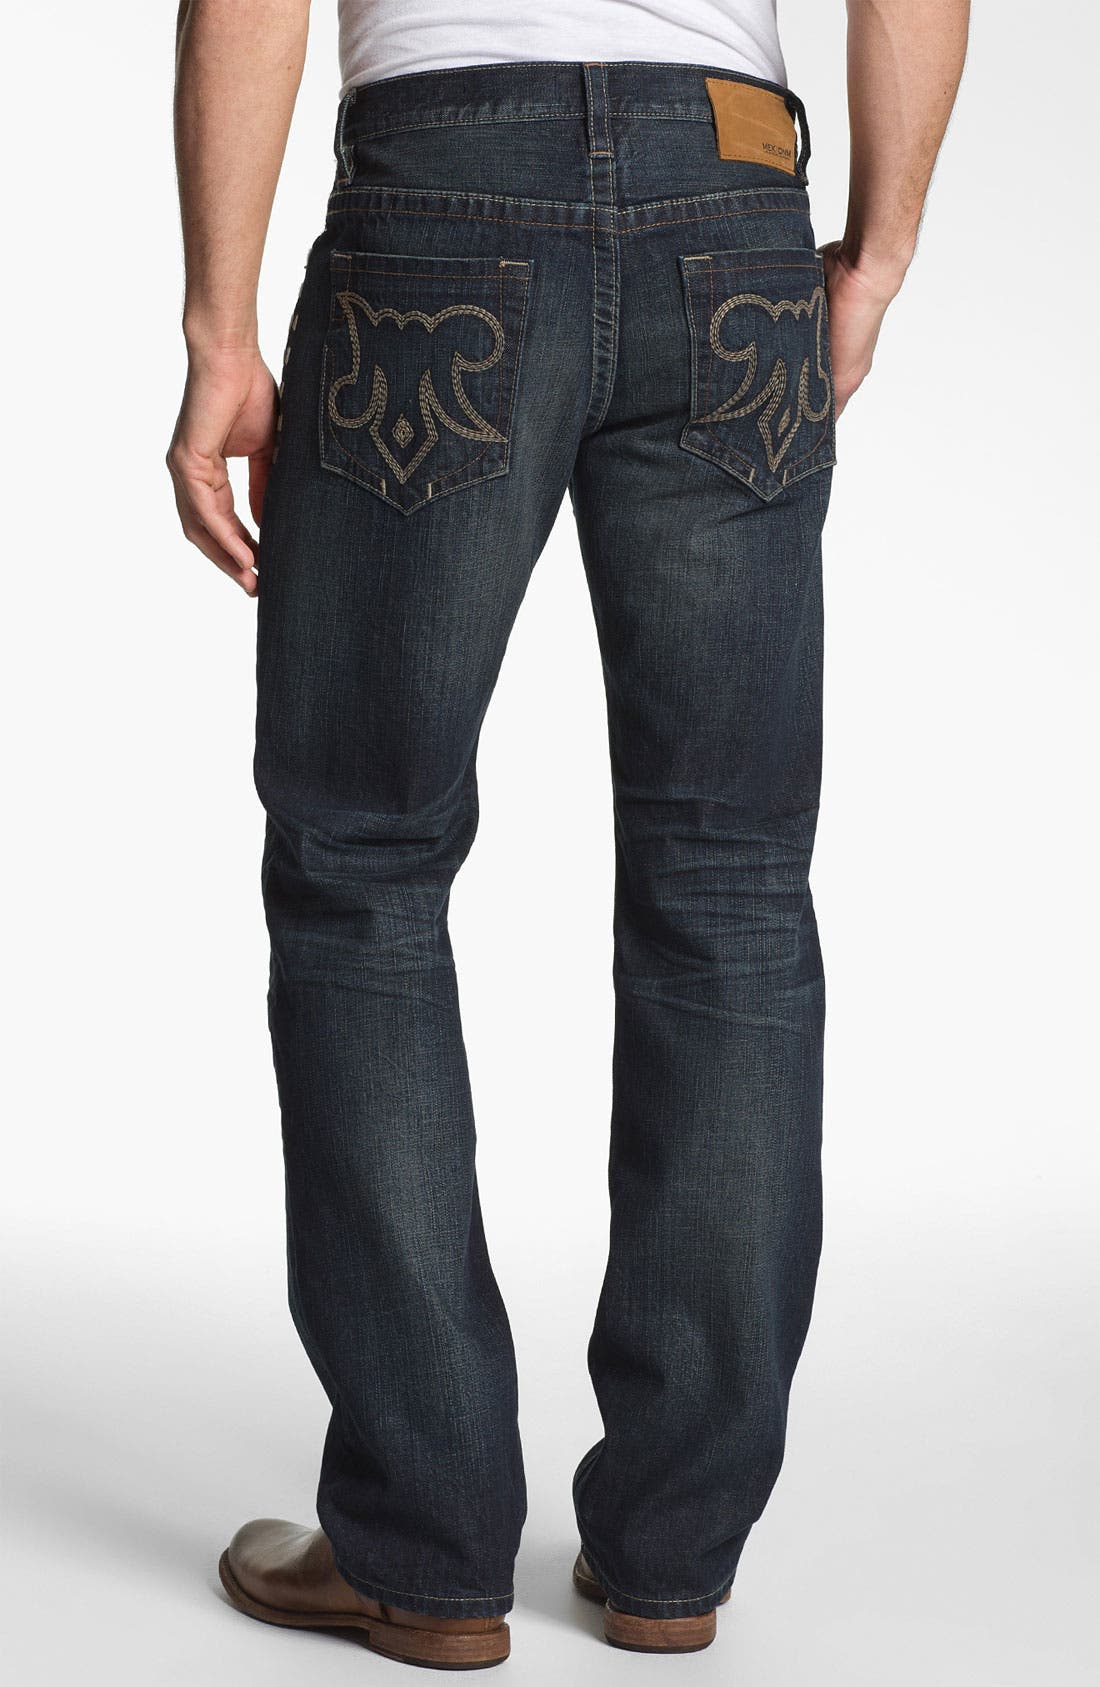 Alternate Image 1 Selected - MEK Denim 'Calix' Straight Leg Jeans (Hash)